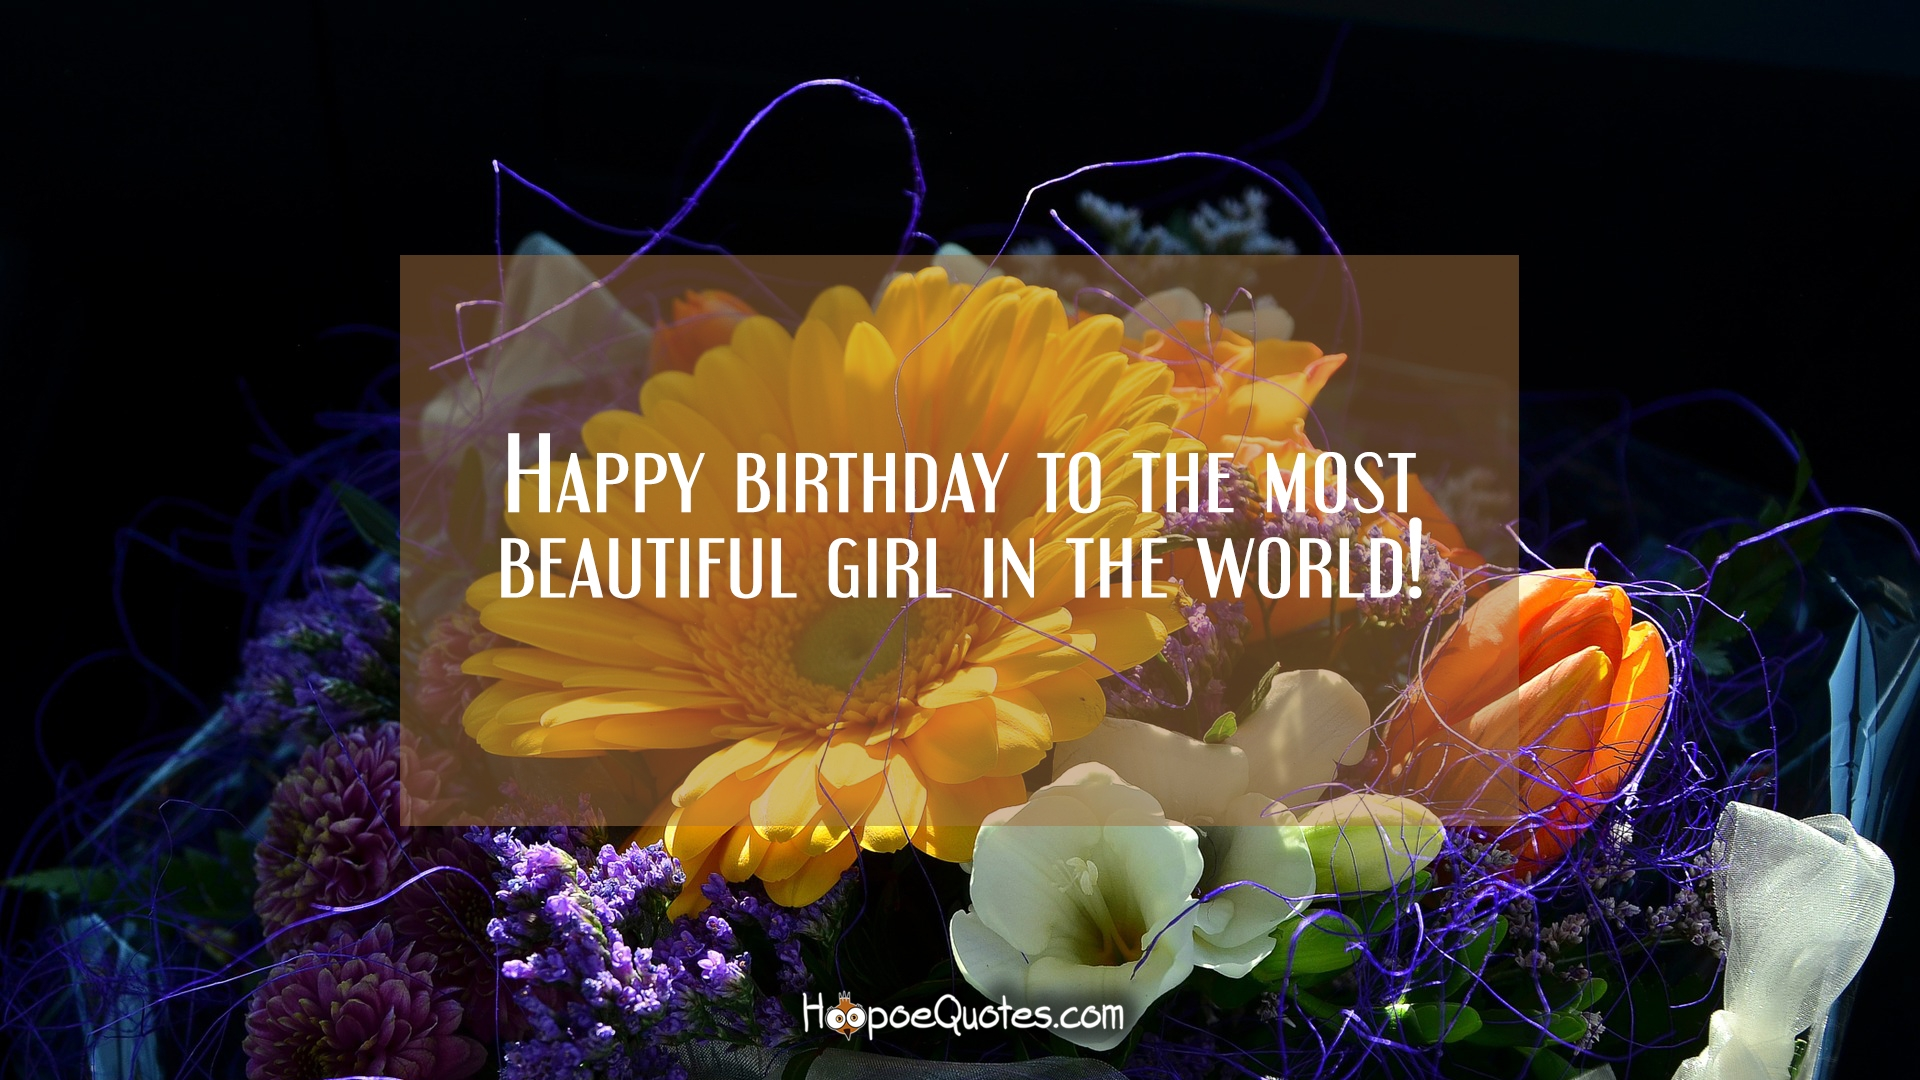 Happy Birthday To The Most Beautiful Girl In The World Hoopoequotes